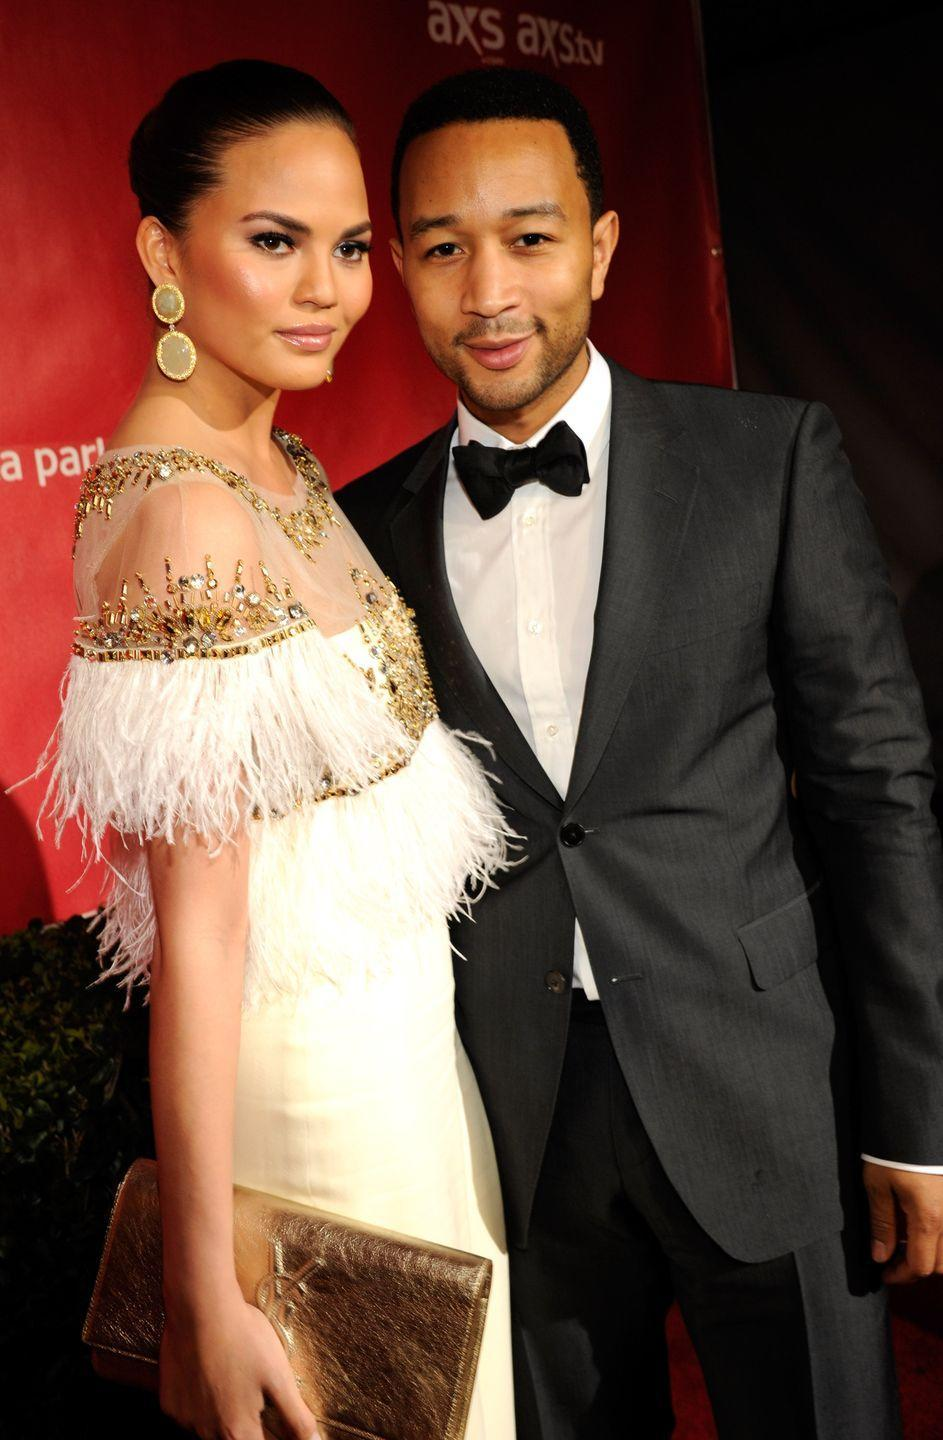 """<p>It doesn't get sweeter than this heartfelt John Legend song. Chrissy Teigen said she knew right away that the song was about her. """"The first line of it is 'What would I do without your smart mouth,' so if that's not about me I don't know what is,"""" she told the <a href=""""https://www.huffpost.com/entry/john-legend-all-of-me_n_3240630"""" data-ylk=""""slk:Huffington Post"""" class=""""link rapid-noclick-resp"""">Huffington Post</a>. </p>"""